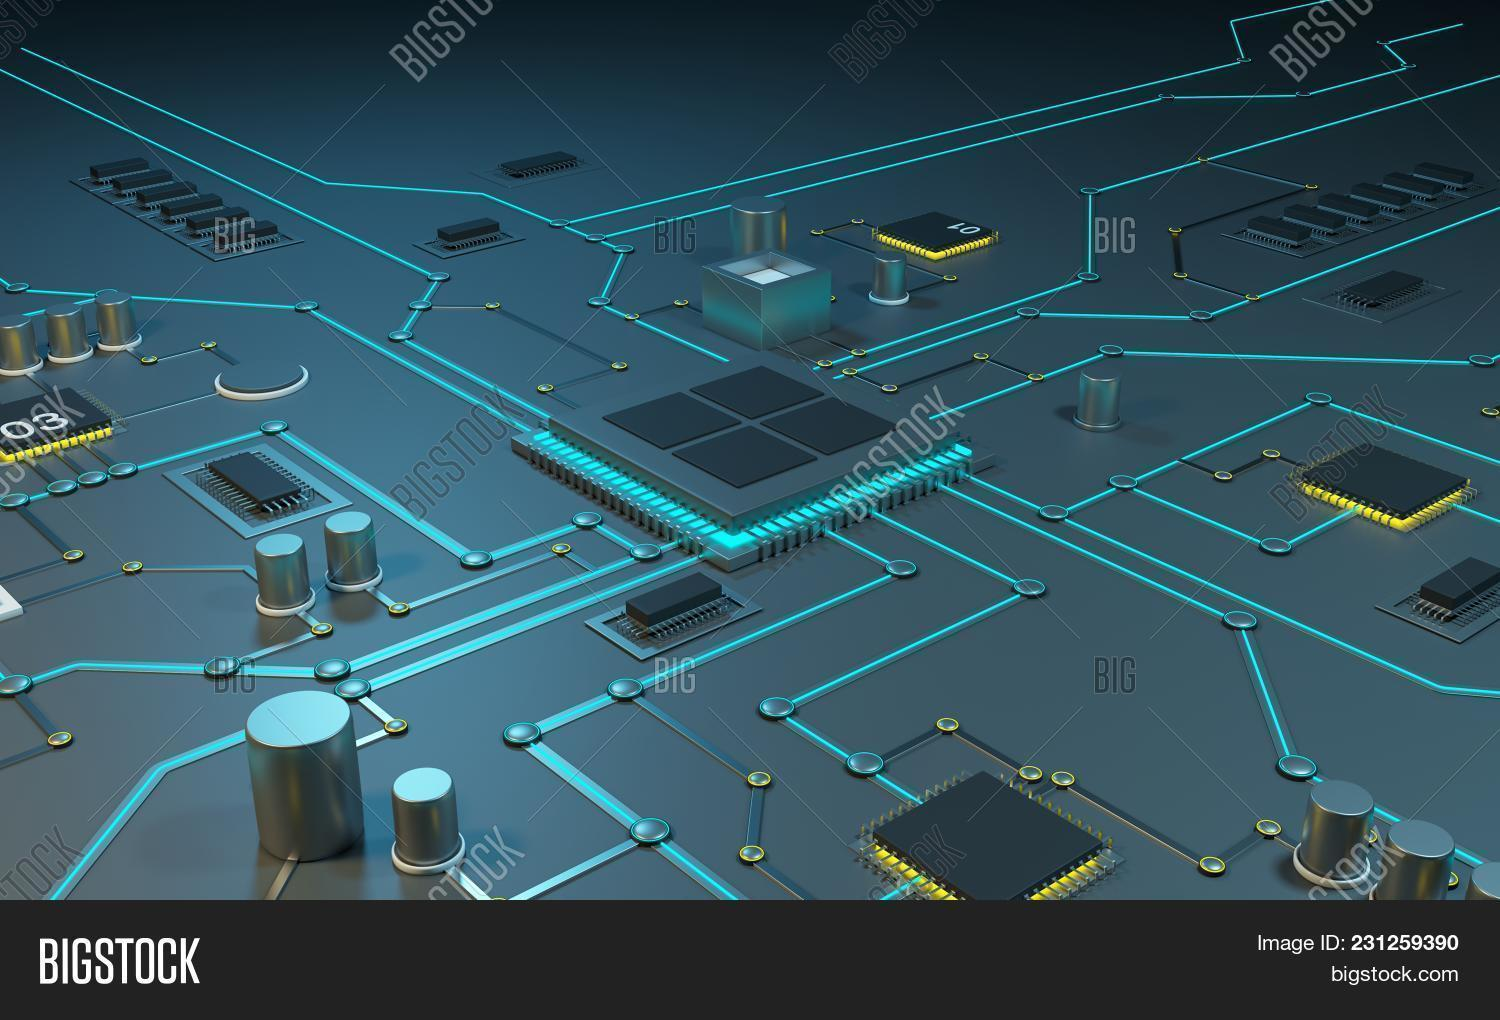 Multicore Processor On Image Photo Free Trial Bigstock Integrated Circuits Chips An Circuit Data Streams Neon Lines